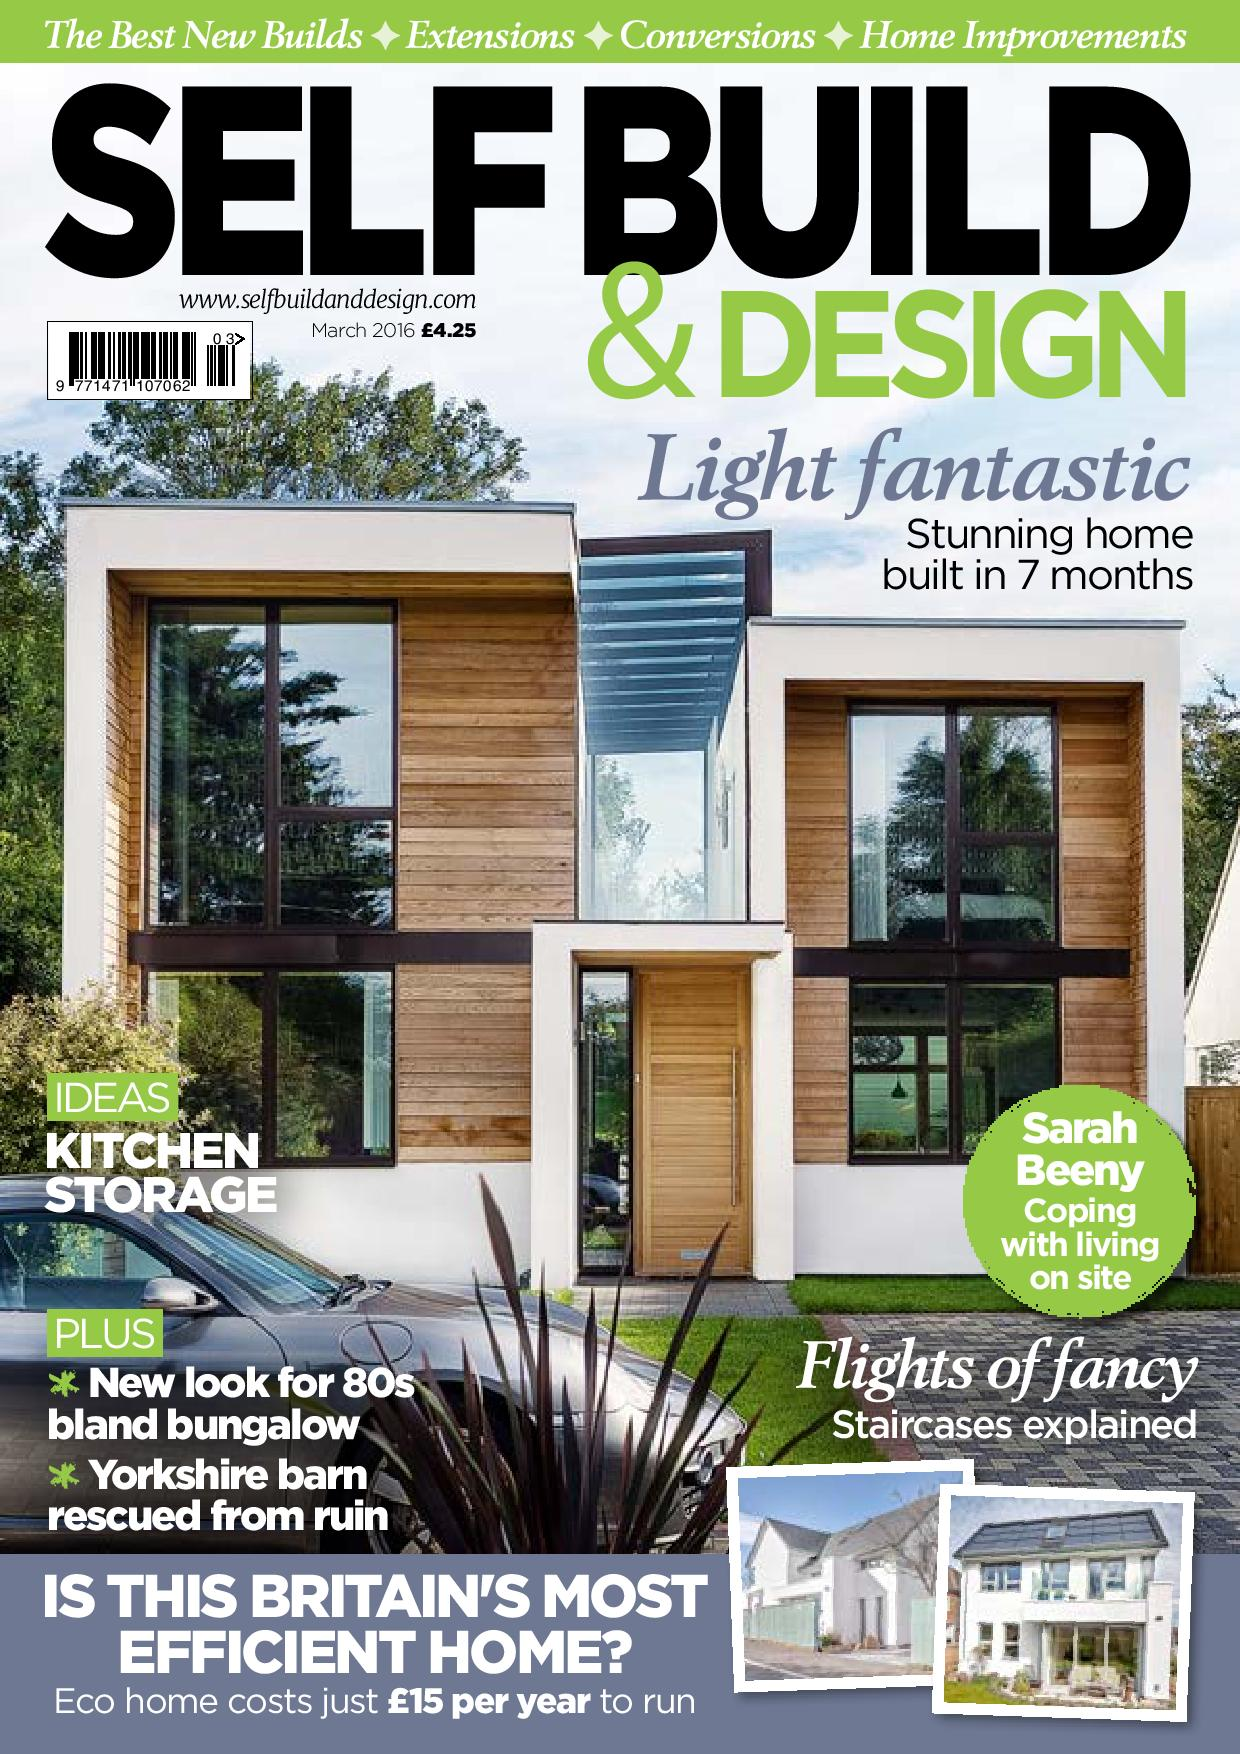 House design magazines uk - Self Build Design Magazine Cover March 2016 Issue